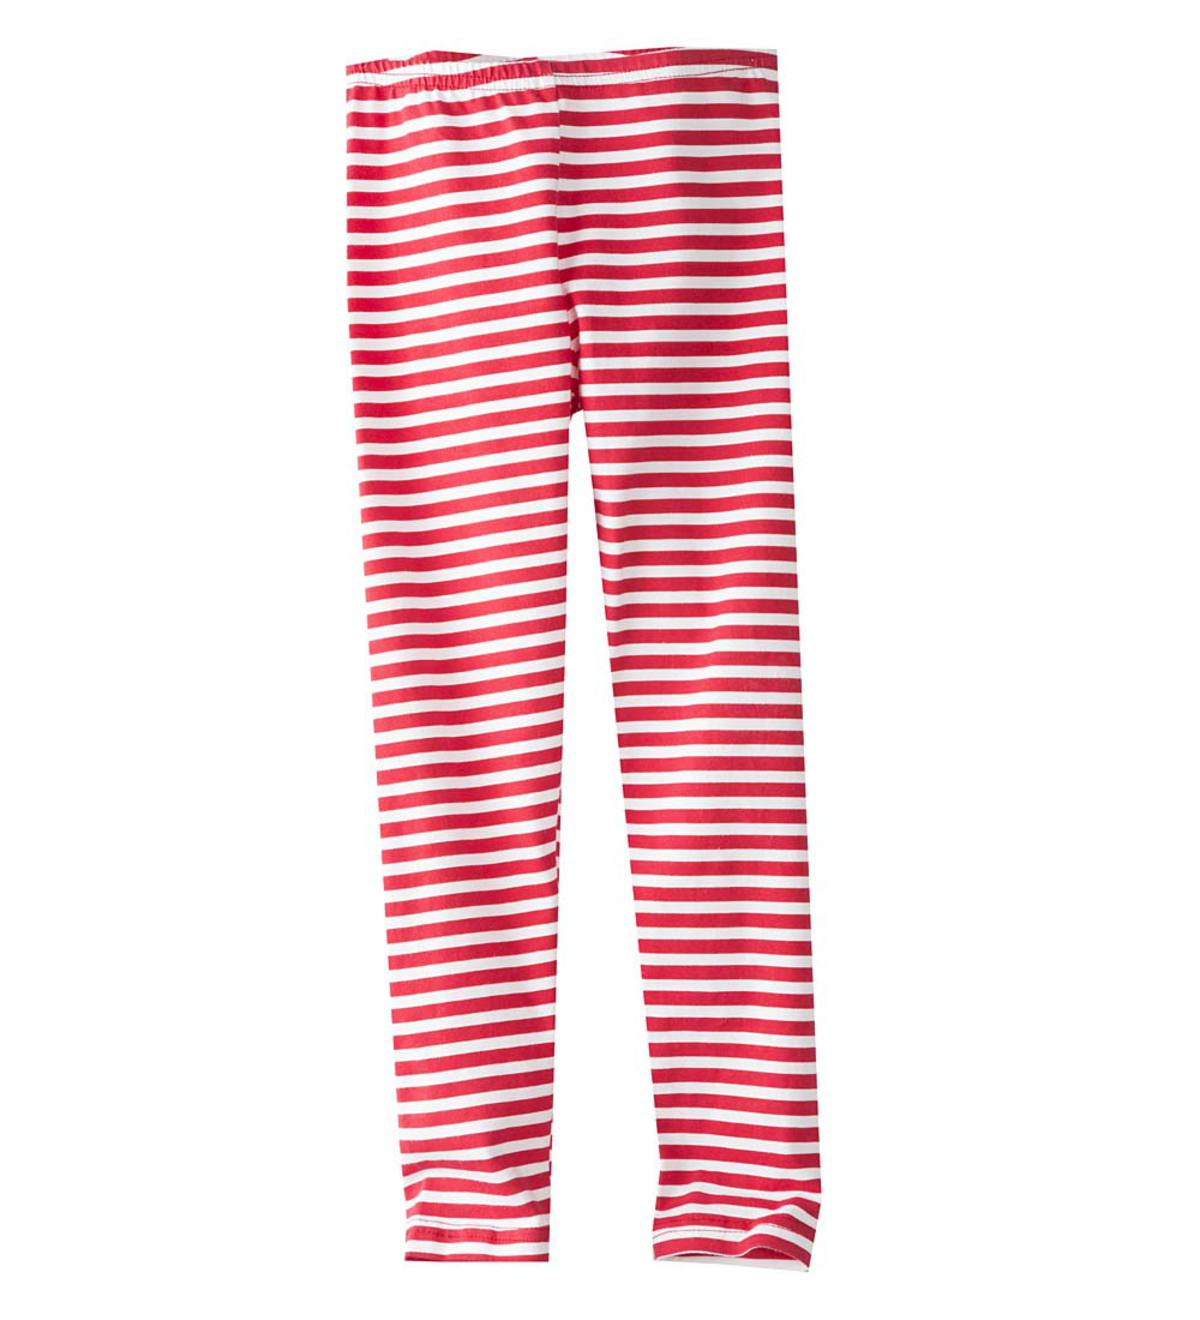 Red-and-White-Striped Capri Leggings - MLT - 10